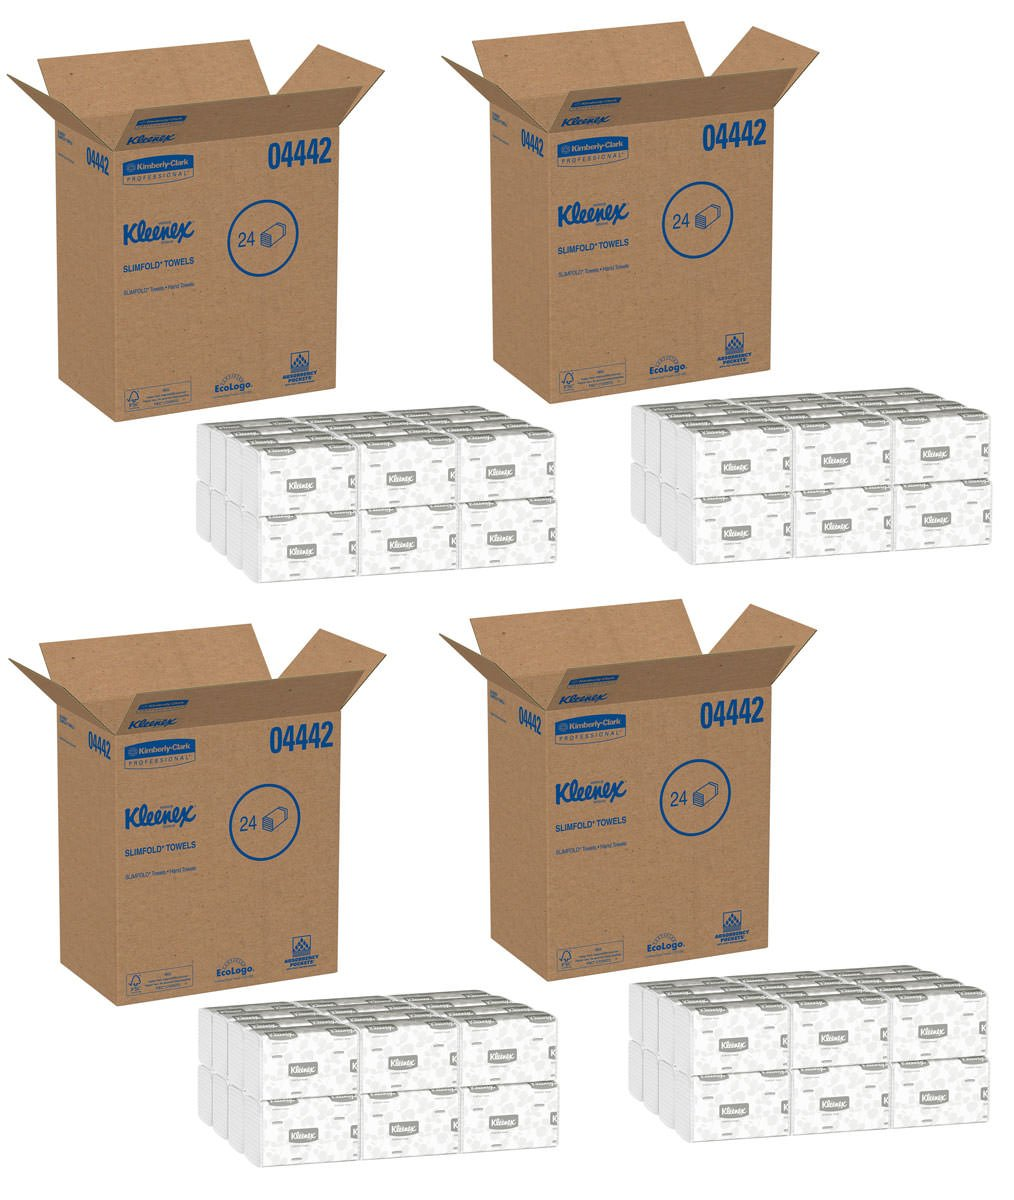 Kleenex 04442 Slimfold Paper Towels, 7 1/2 x 11 3/5, White, 90 per Pack (Case of 24 Packs), 4 Case